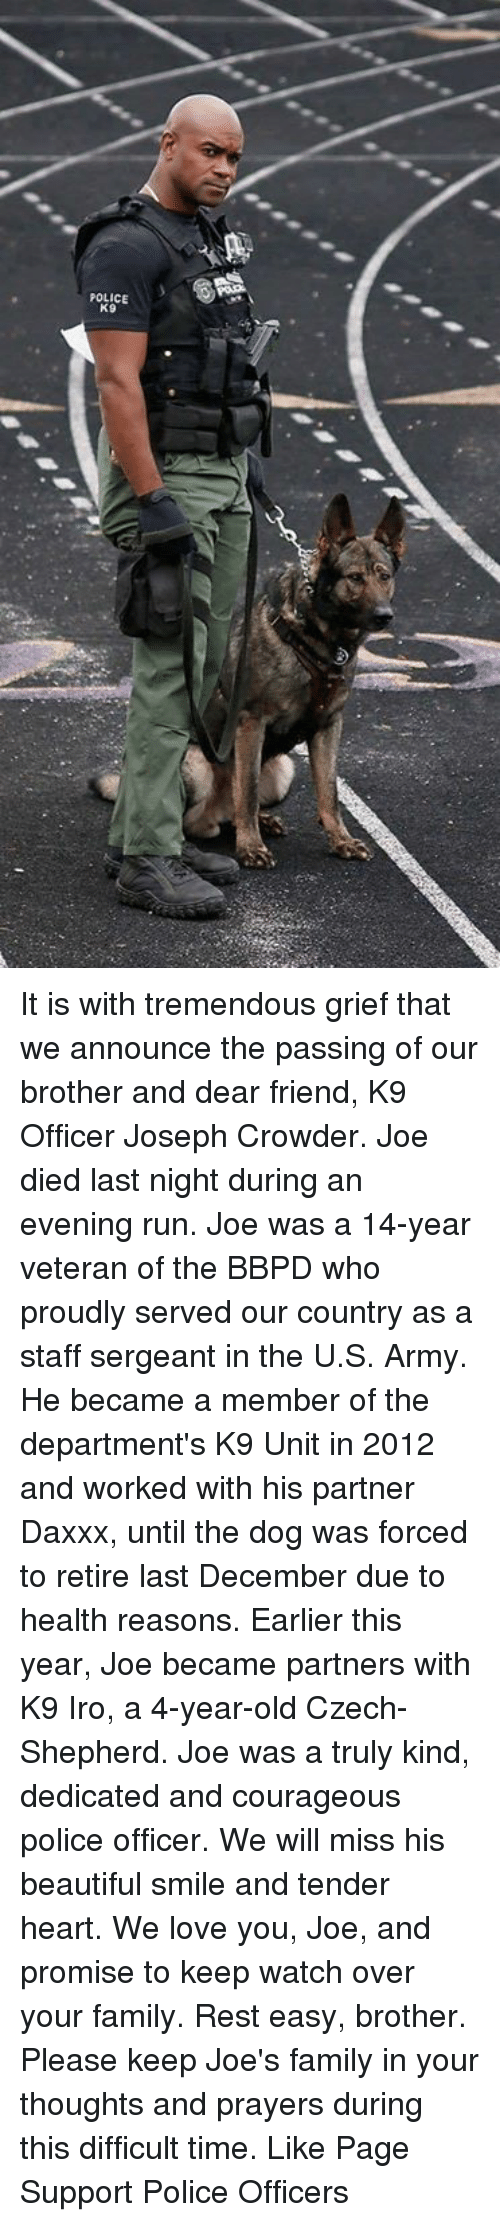 Memes, The Departed, and Army: POLICE  K9 It is with tremendous grief that we announce the passing of our brother and dear friend, K9 Officer Joseph Crowder. Joe died last night during an evening run. Joe was a 14-year veteran of the BBPD who proudly served our country as a staff sergeant in the U.S. Army. He became a member of the department's K9 Unit in 2012 and worked with his partner Daxxx, until the dog was forced to retire last December due to health reasons. Earlier this year, Joe became partners with K9 Iro, a 4-year-old Czech-Shepherd. Joe was a truly kind, dedicated and courageous police officer. We will miss his beautiful smile and tender heart. We love you, Joe, and promise to keep watch over your family. Rest easy, brother. Please keep Joe's family in your thoughts and prayers during this difficult time. Like Page Support Police Officers